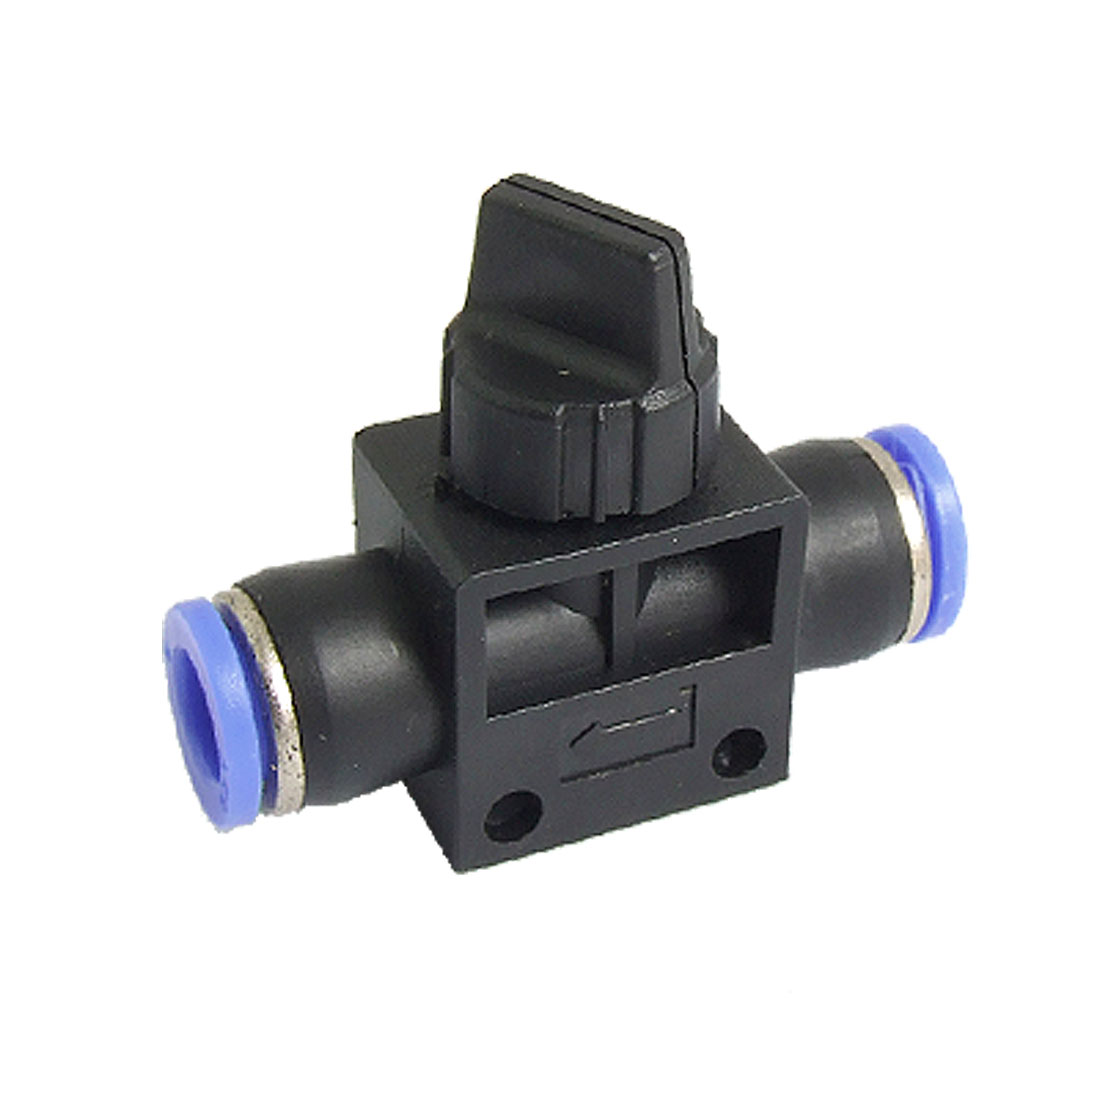 Pneumatic 8mm One Touch Fitting Hand Valve Fitting